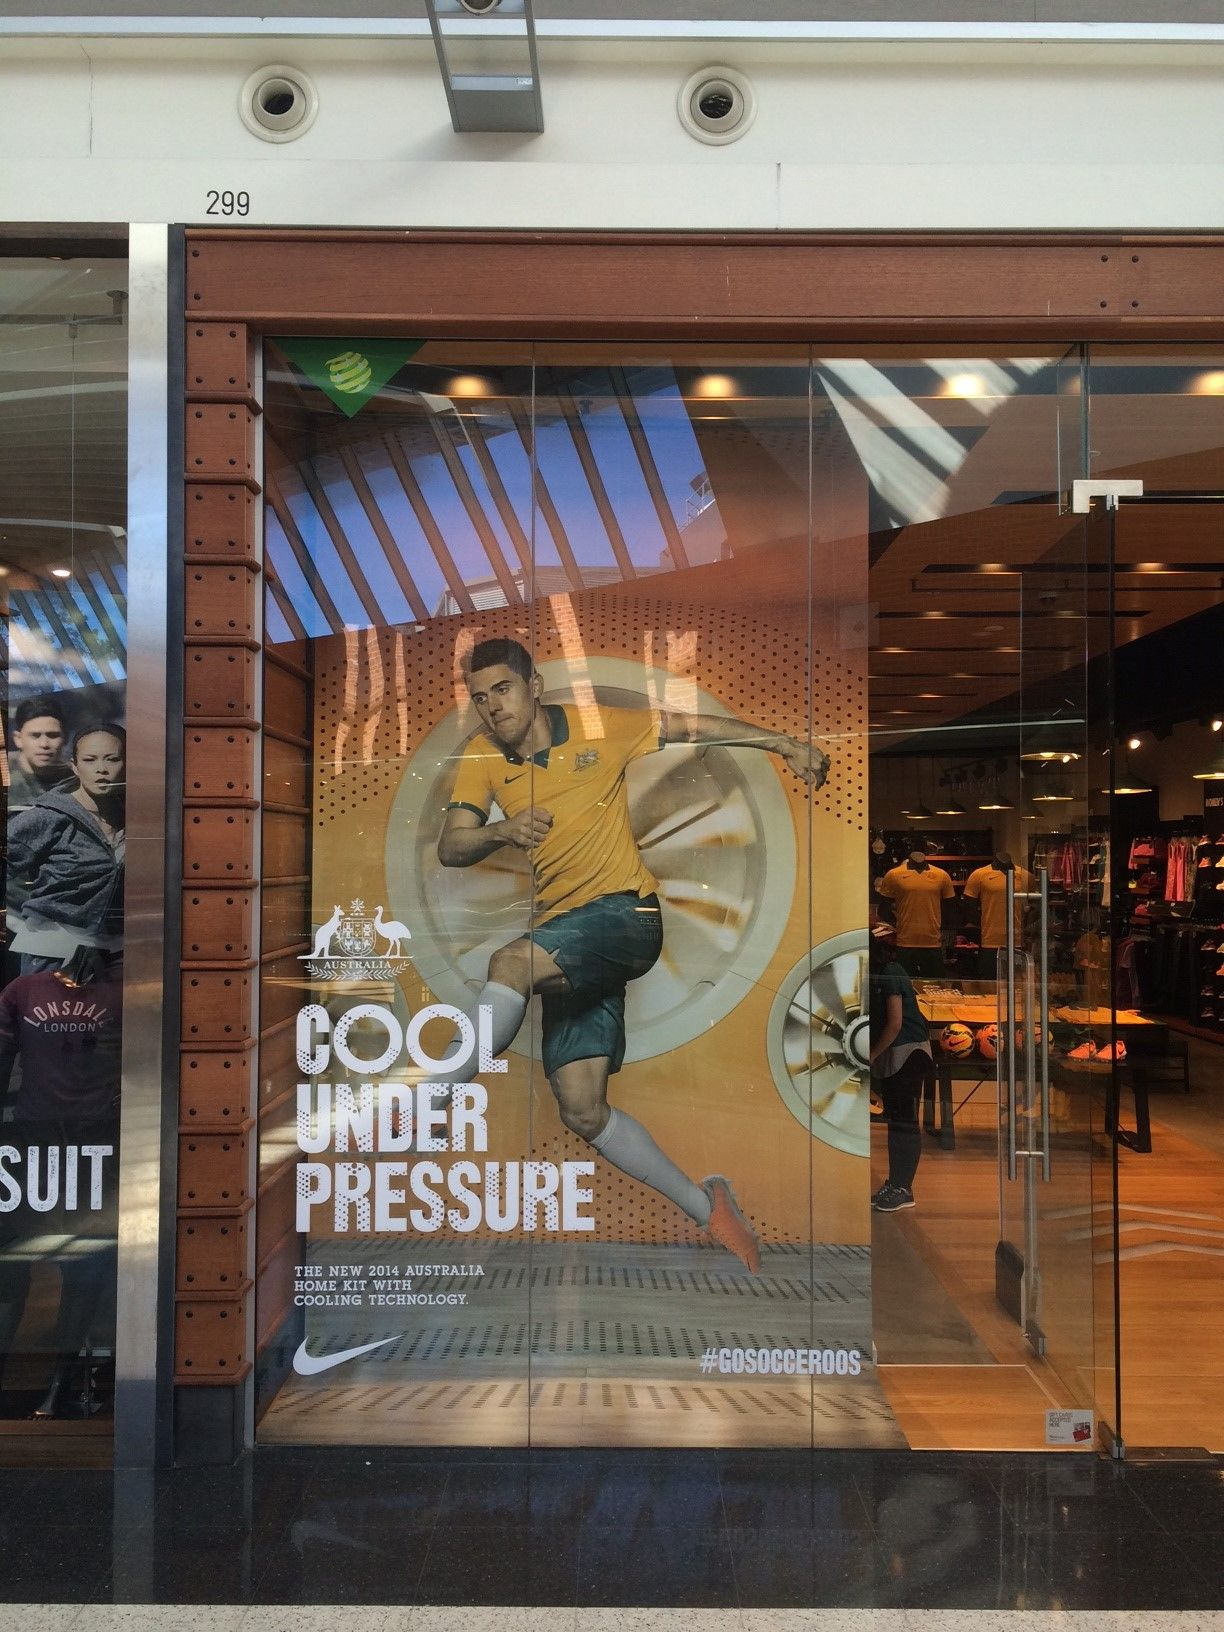 Nike Football retail window display Socceroos display.